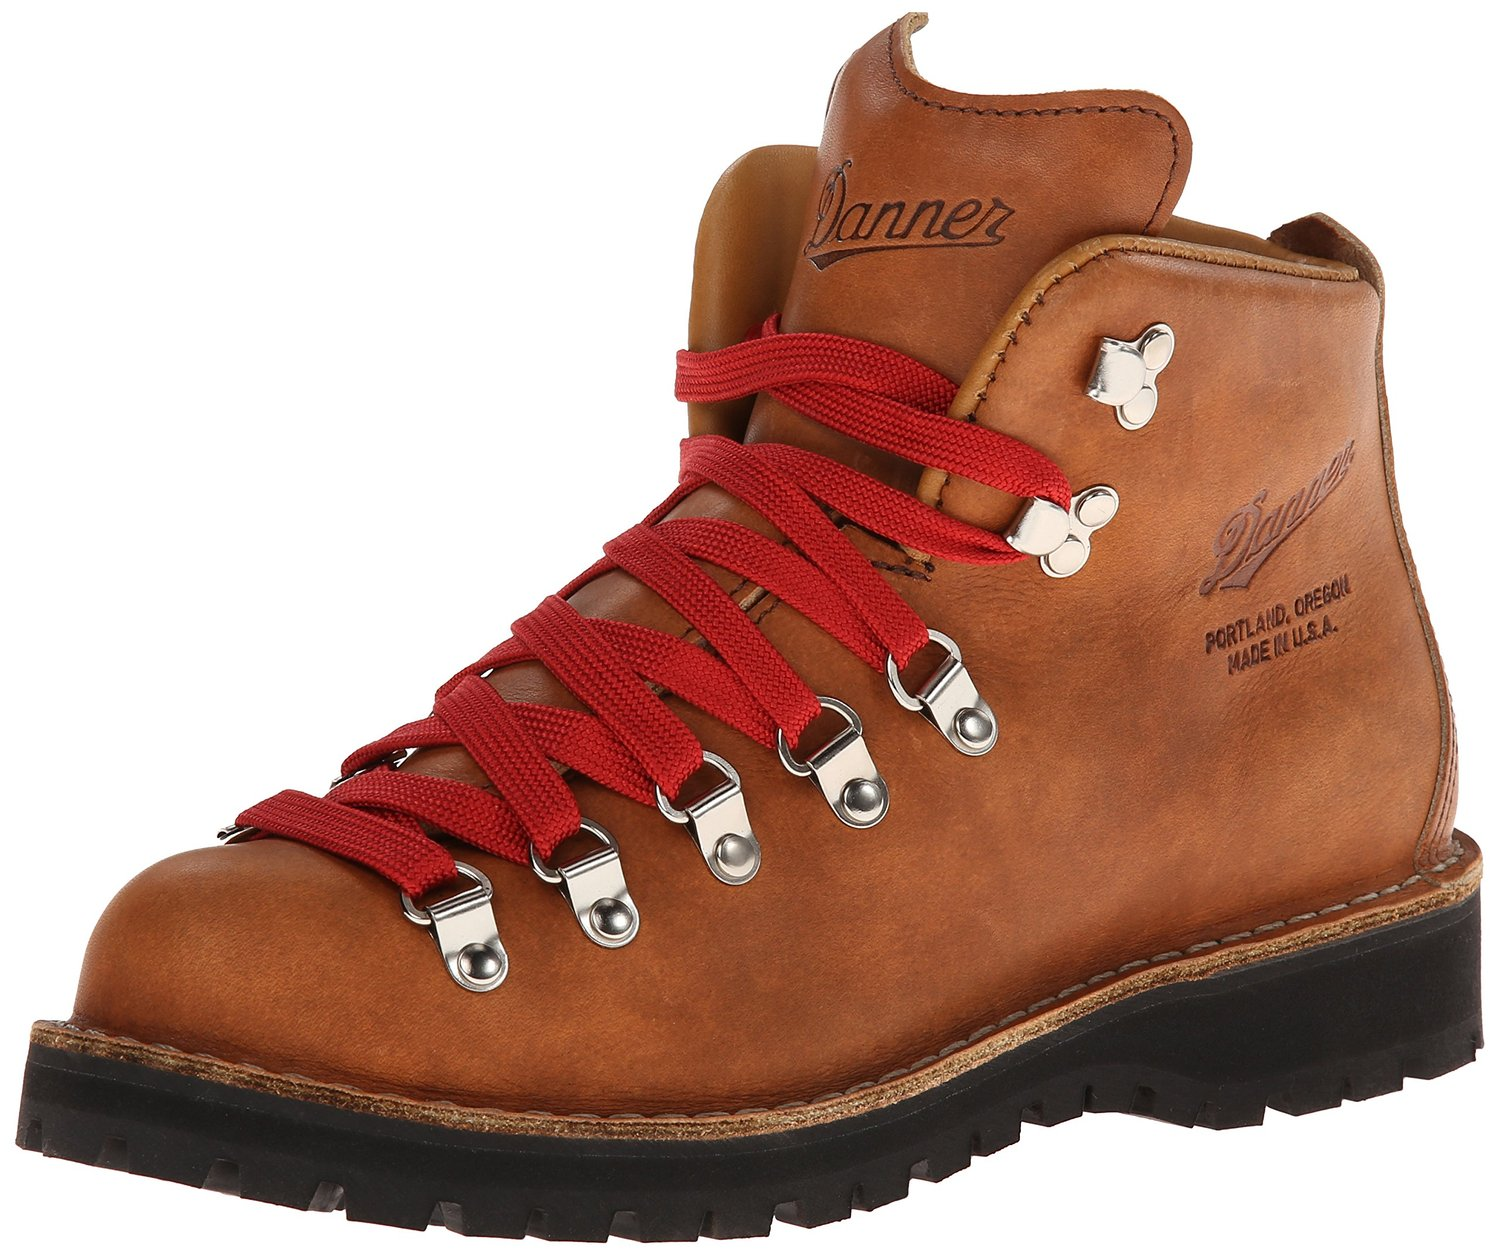 Stumptown By Danner Women S Mountain Light Cascade Hiking